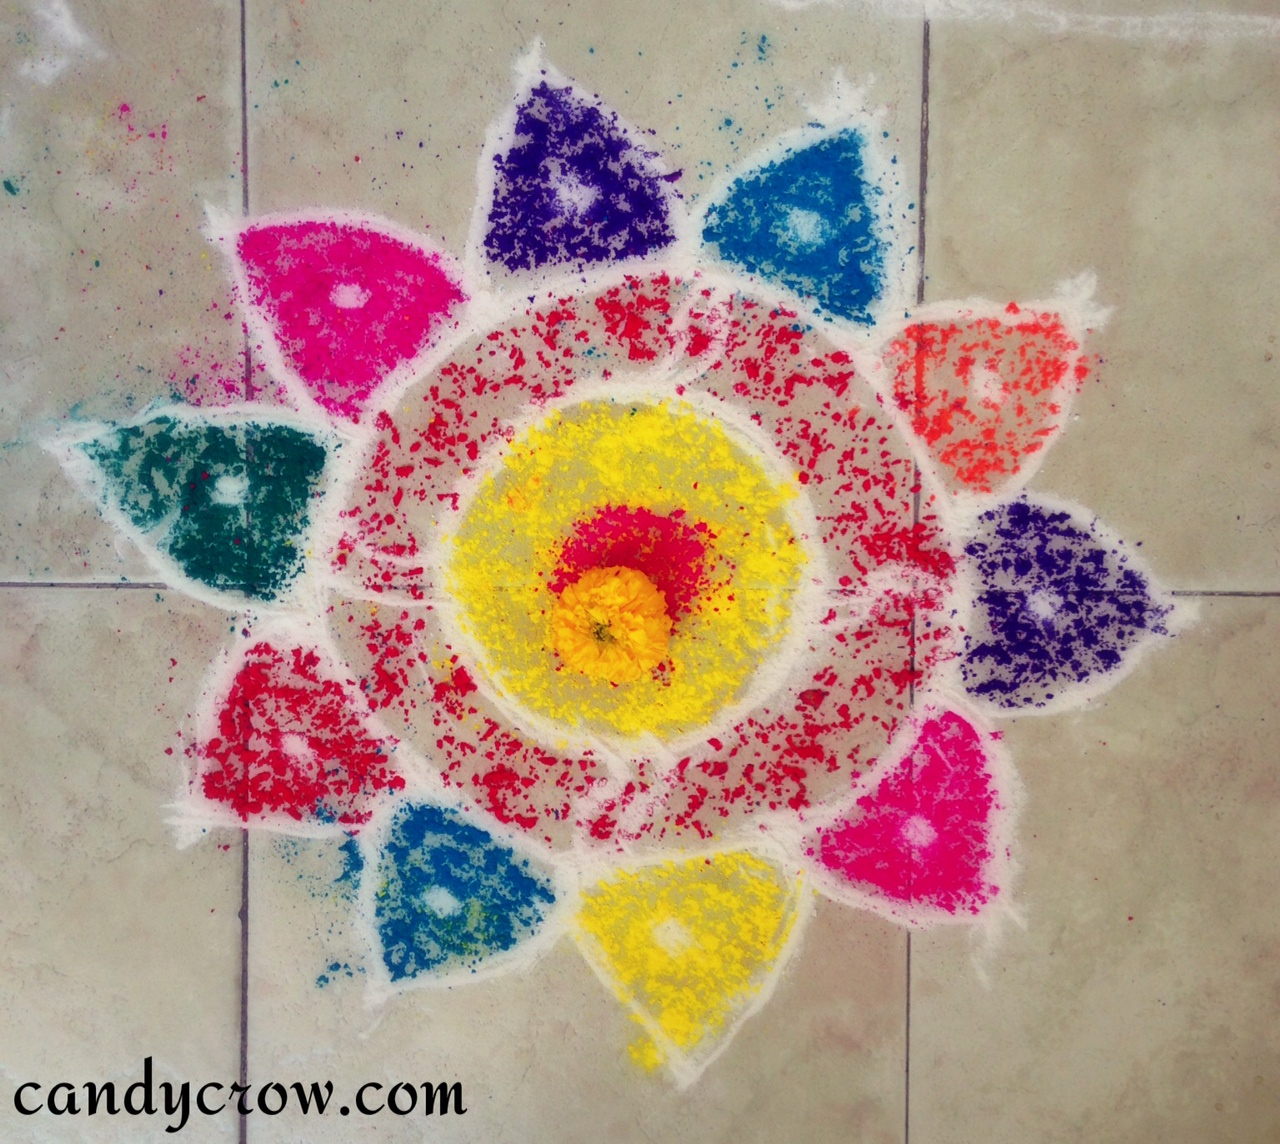 easy rangoli designs for pongal diwali and karthikai deepam candy crow top indian beauty and. Black Bedroom Furniture Sets. Home Design Ideas